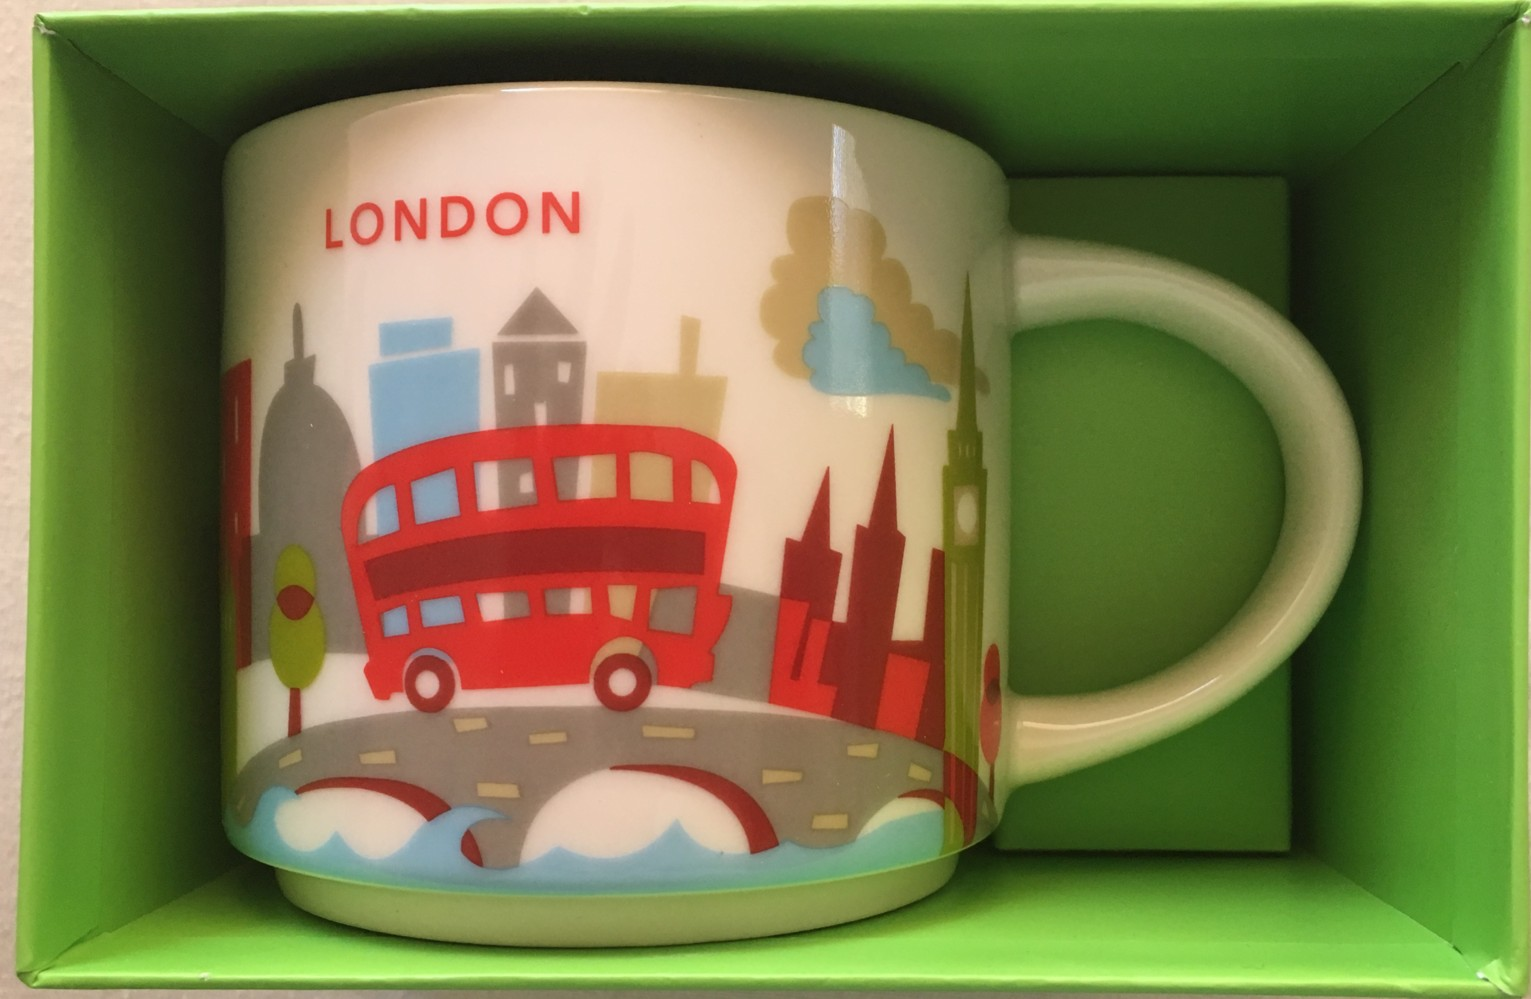 Flagrant Starbucks 2013 You Are Here Collection London Ounce Collector Coffee Edge Starbucks 2013 You Are Here Collection London Ounce Collector Coffee Mug Collectors Coffee Mug Collection Shelf furniture Coffee Mug Collection